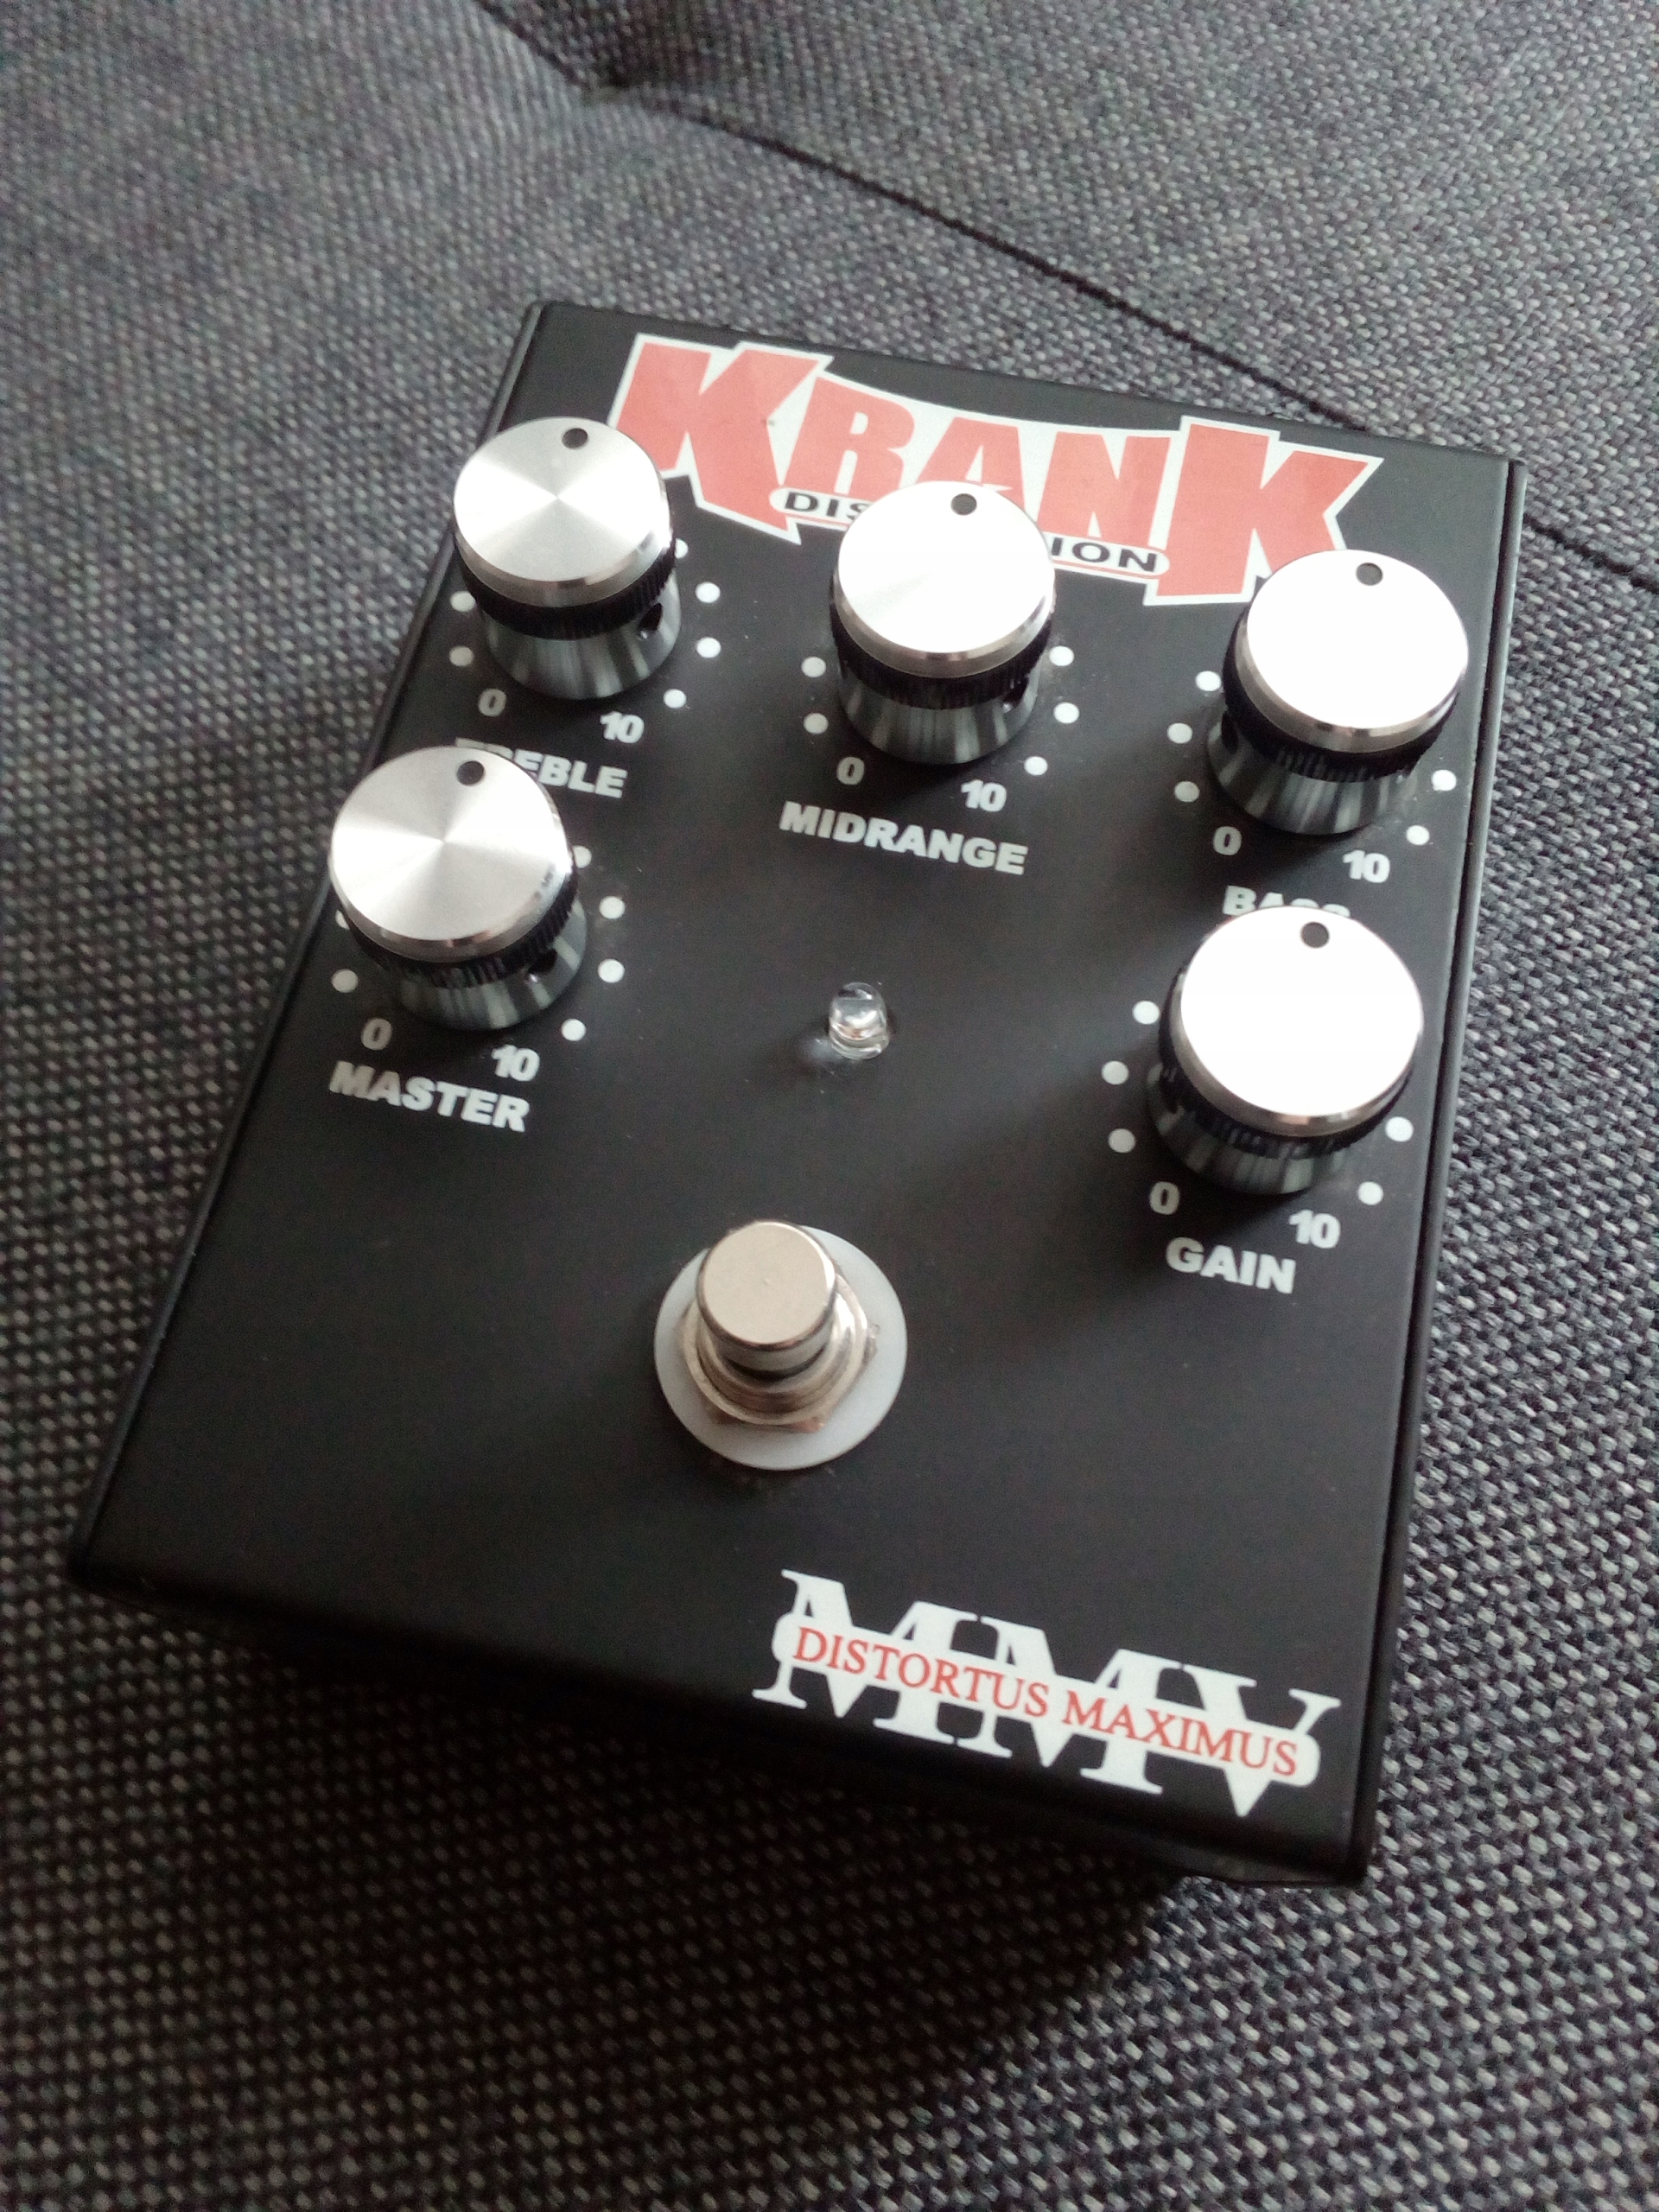 Krank Distortus Maximus Distortion